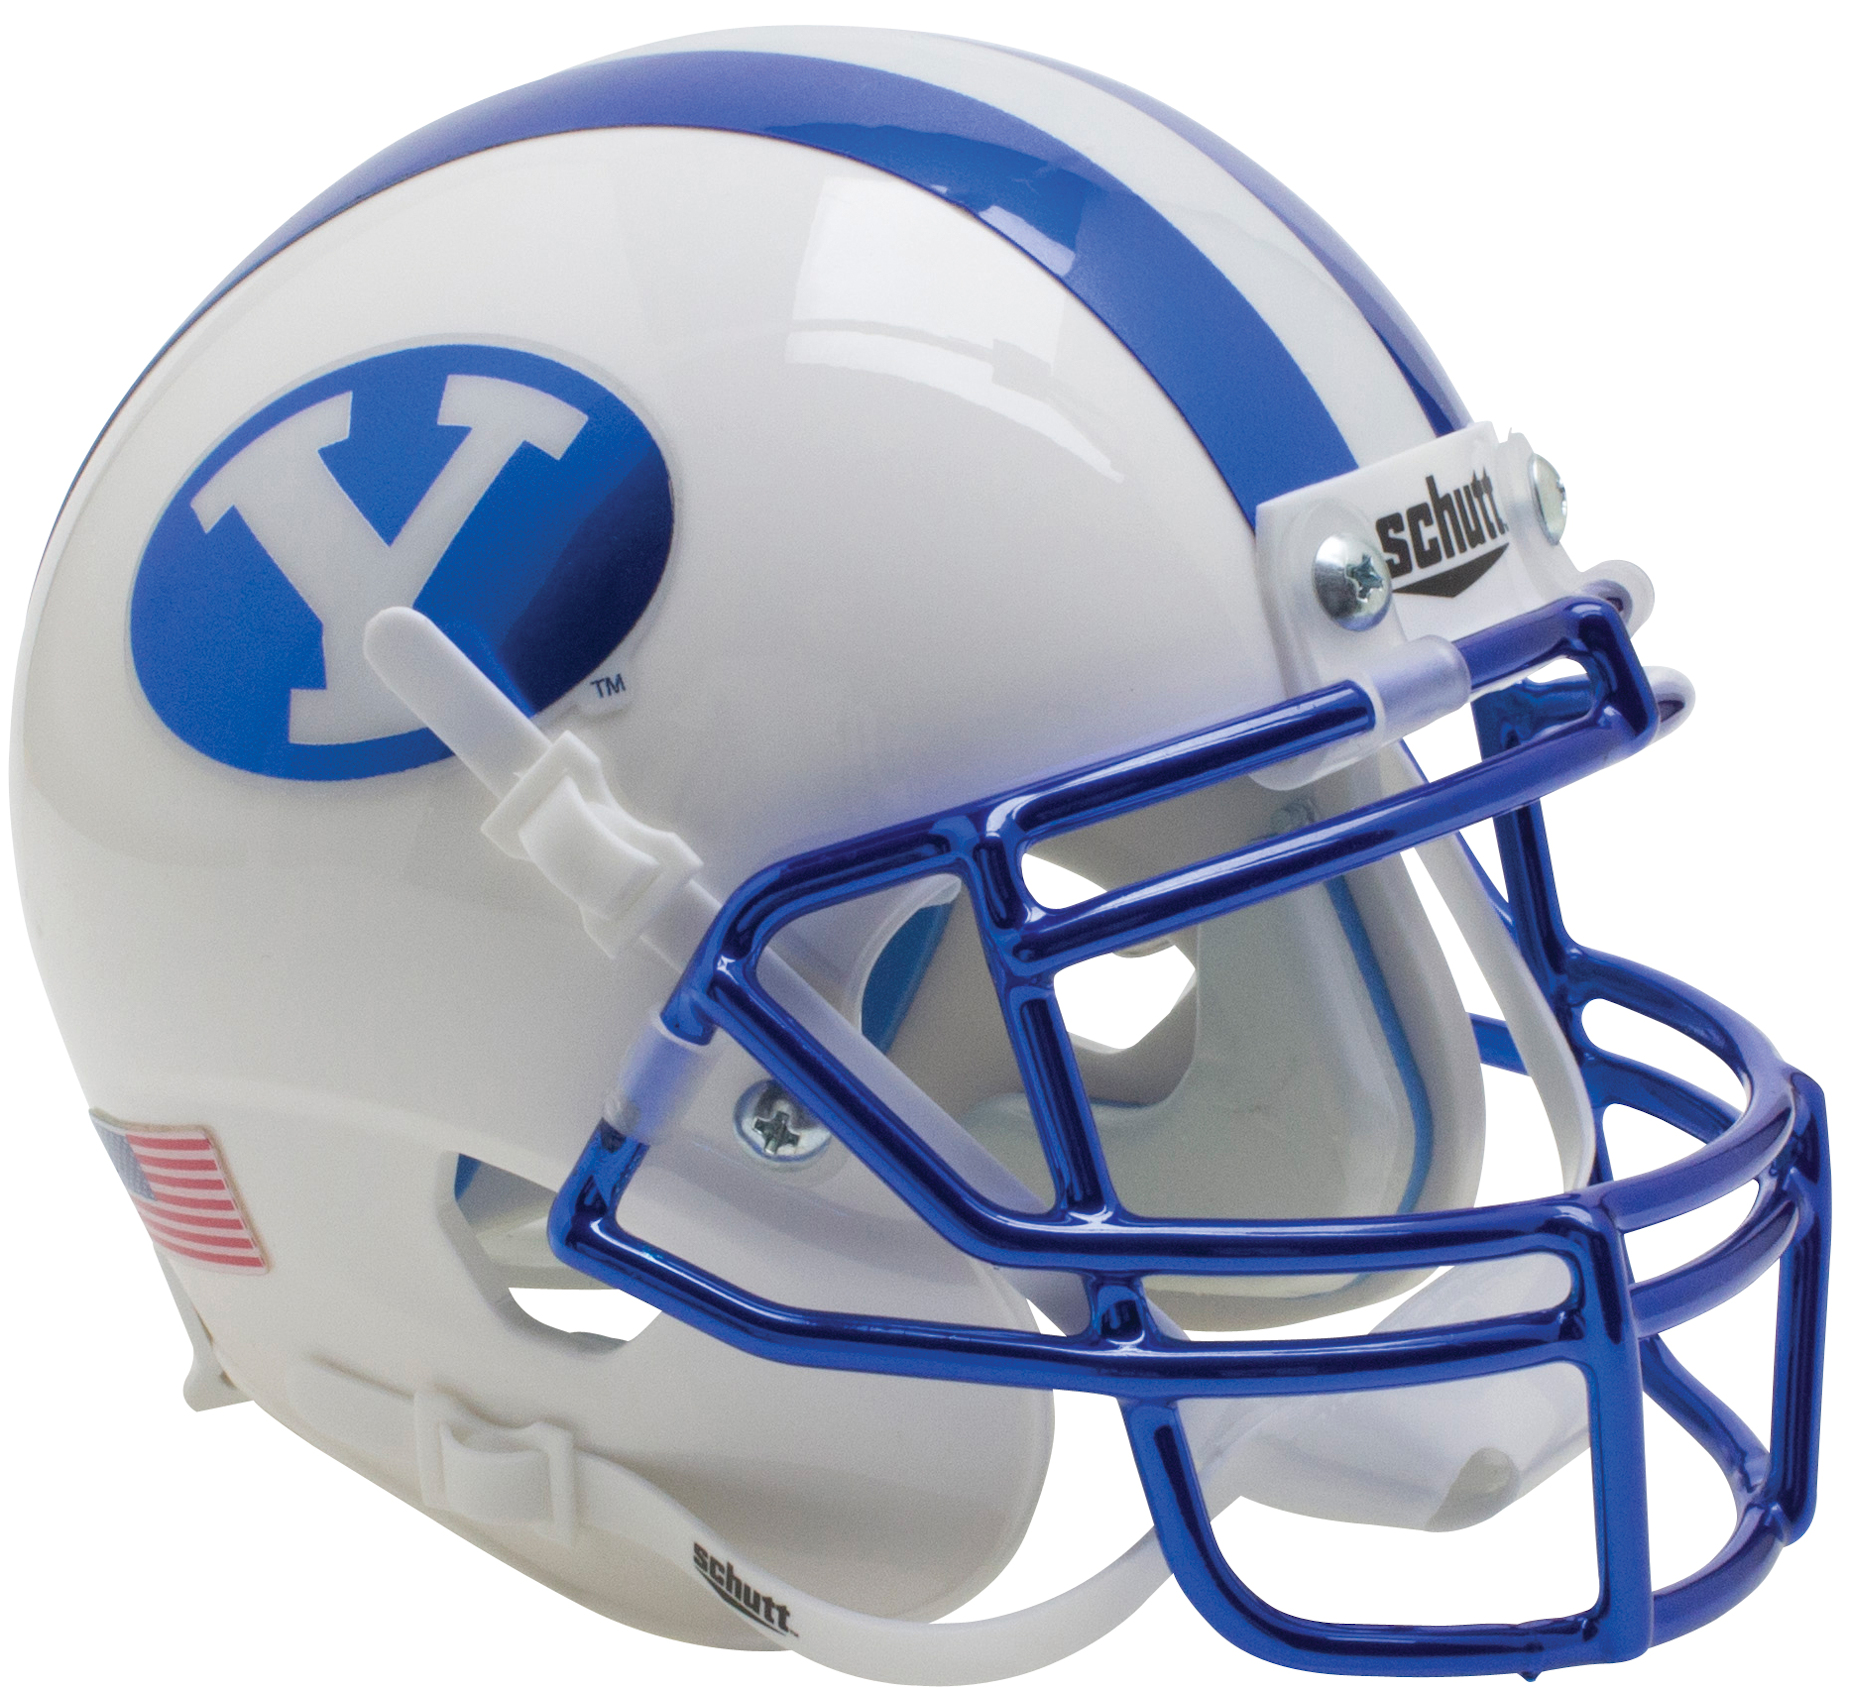 Brigham Young Cougars Authentic College XP Football Helmet Schutt <B>Chrome Blue Decal and Mask</B>